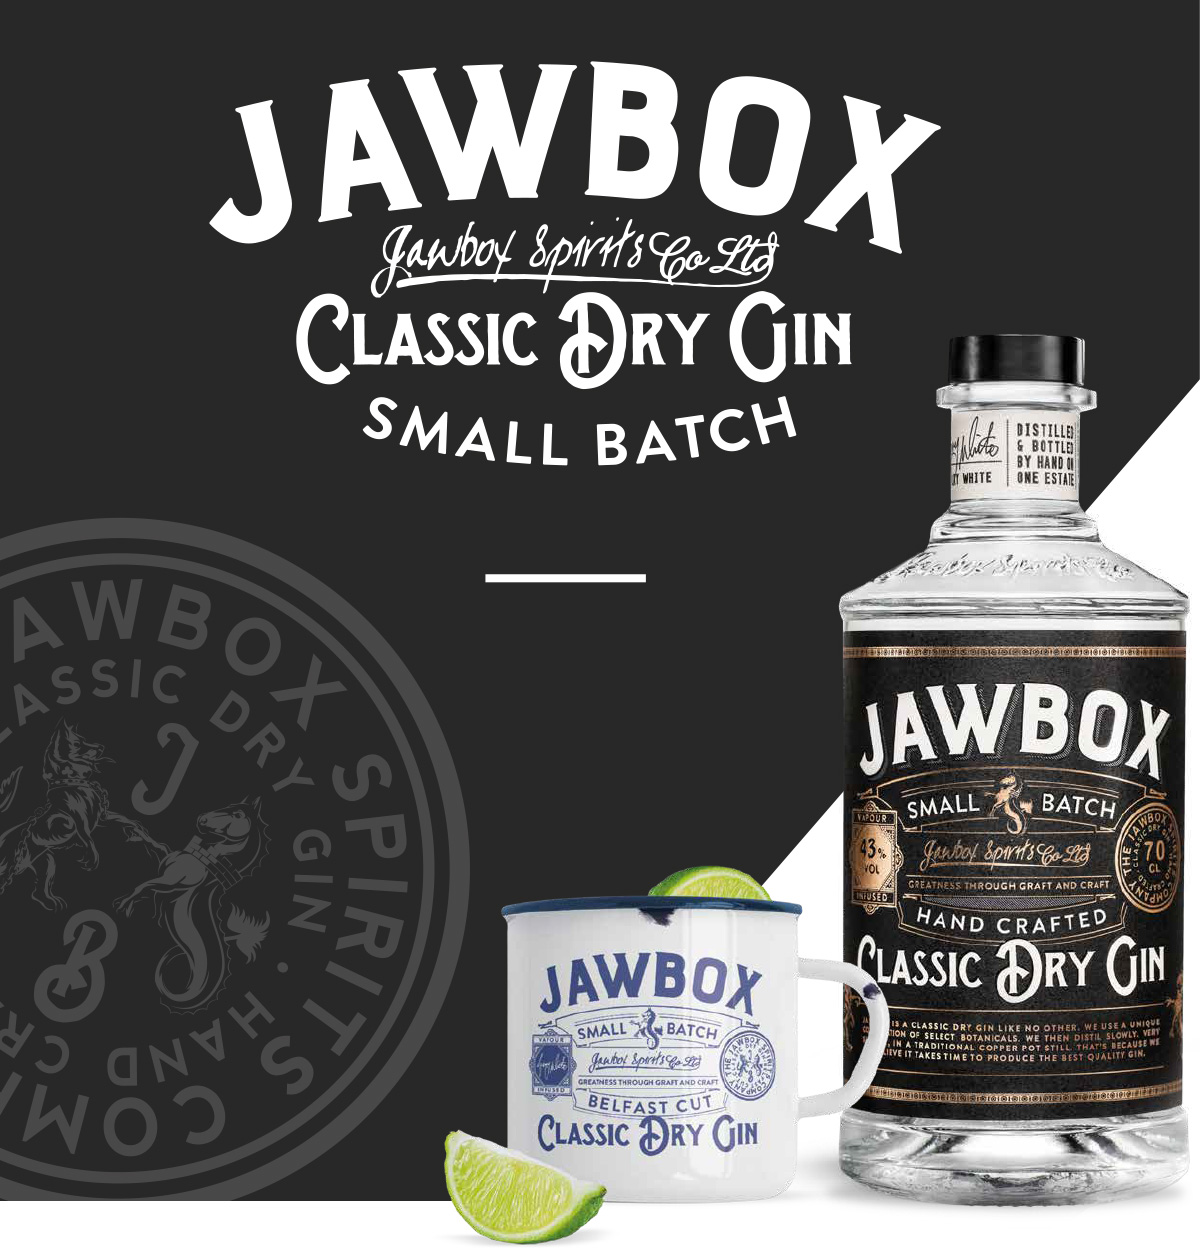 Jawbox Gin Small Batch